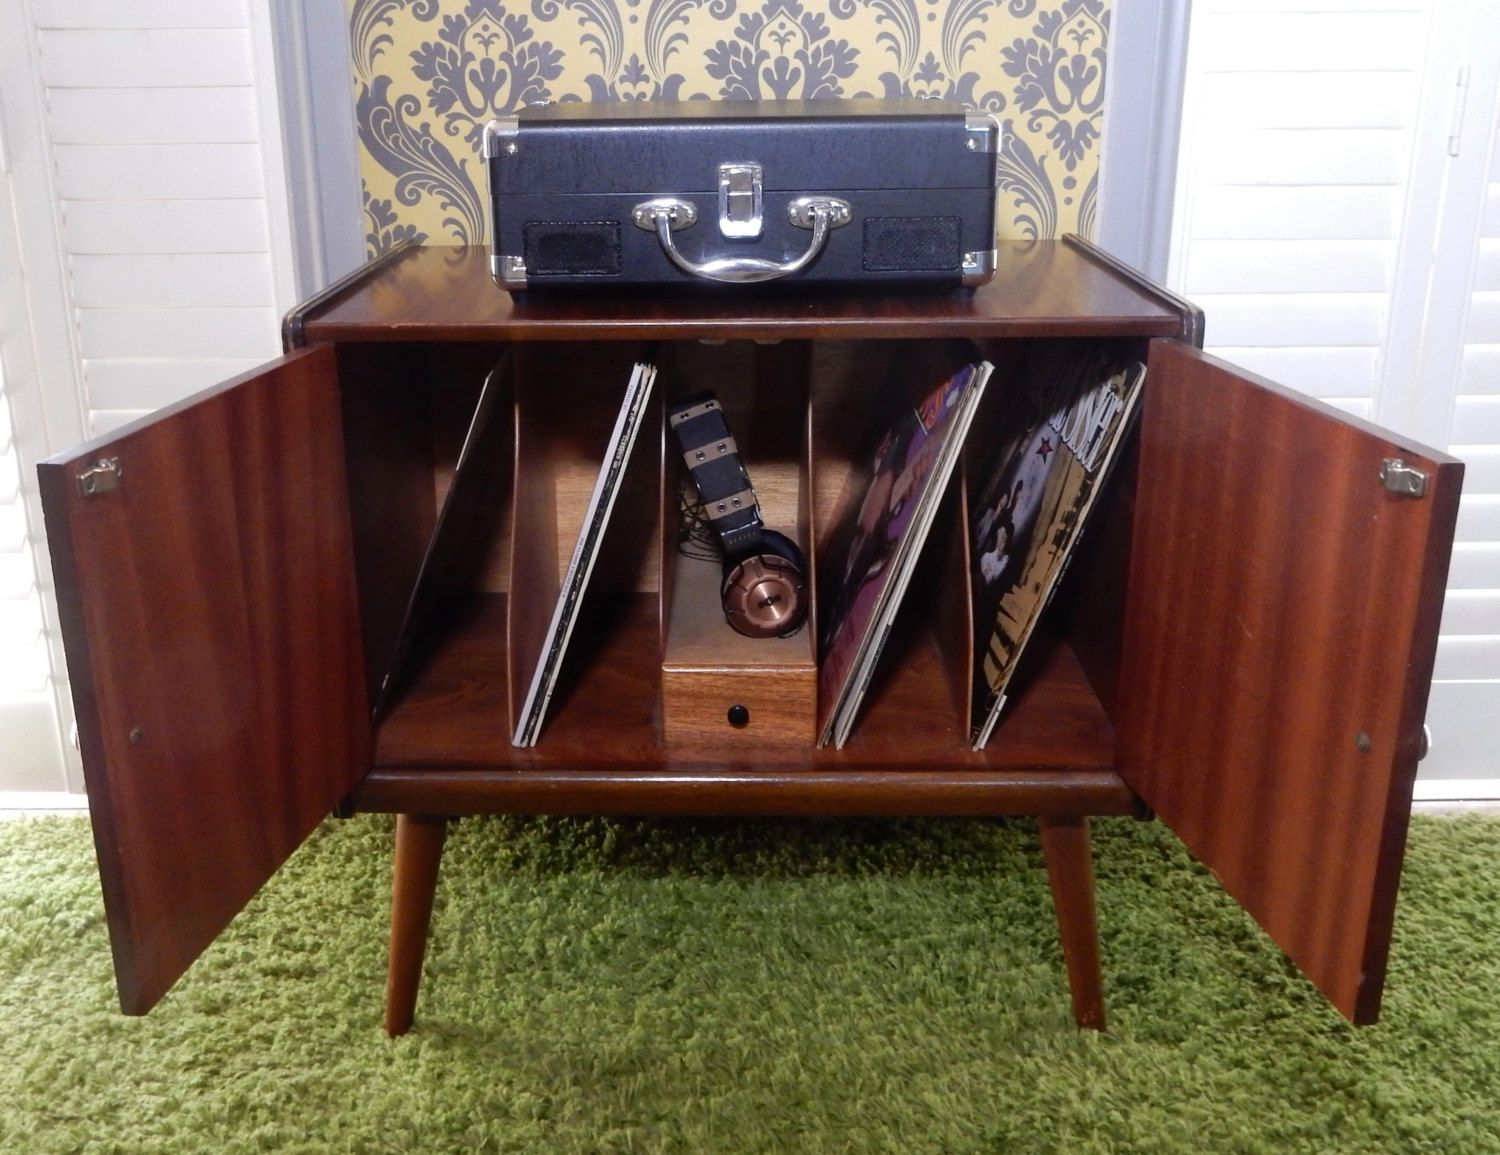 1960s Record Cabinet A Lovely Vintage Retro 1960s Teak Record Cabinet Crafting Box